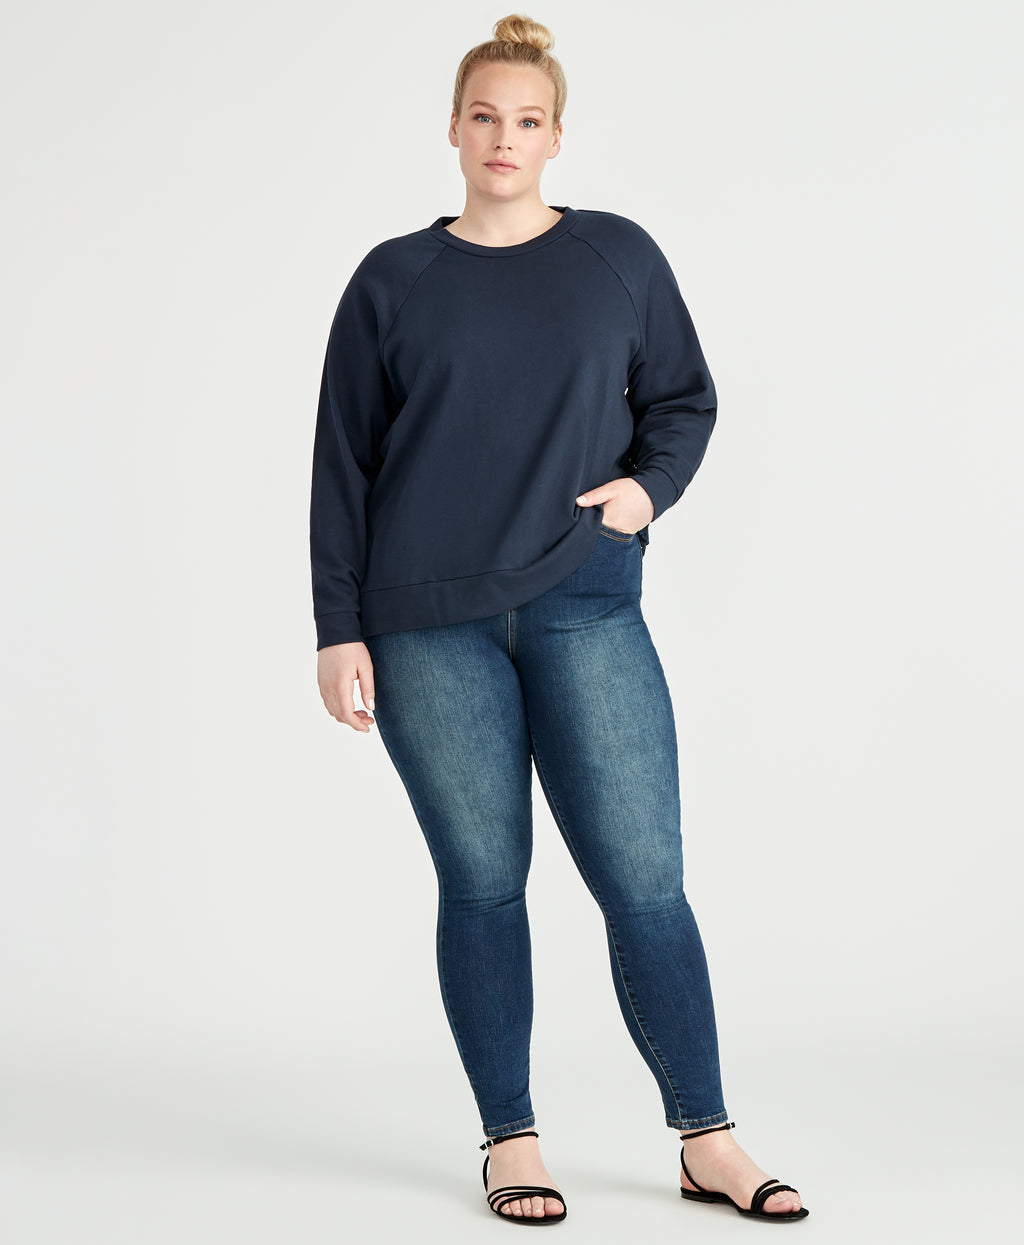 Moana Top | Navy